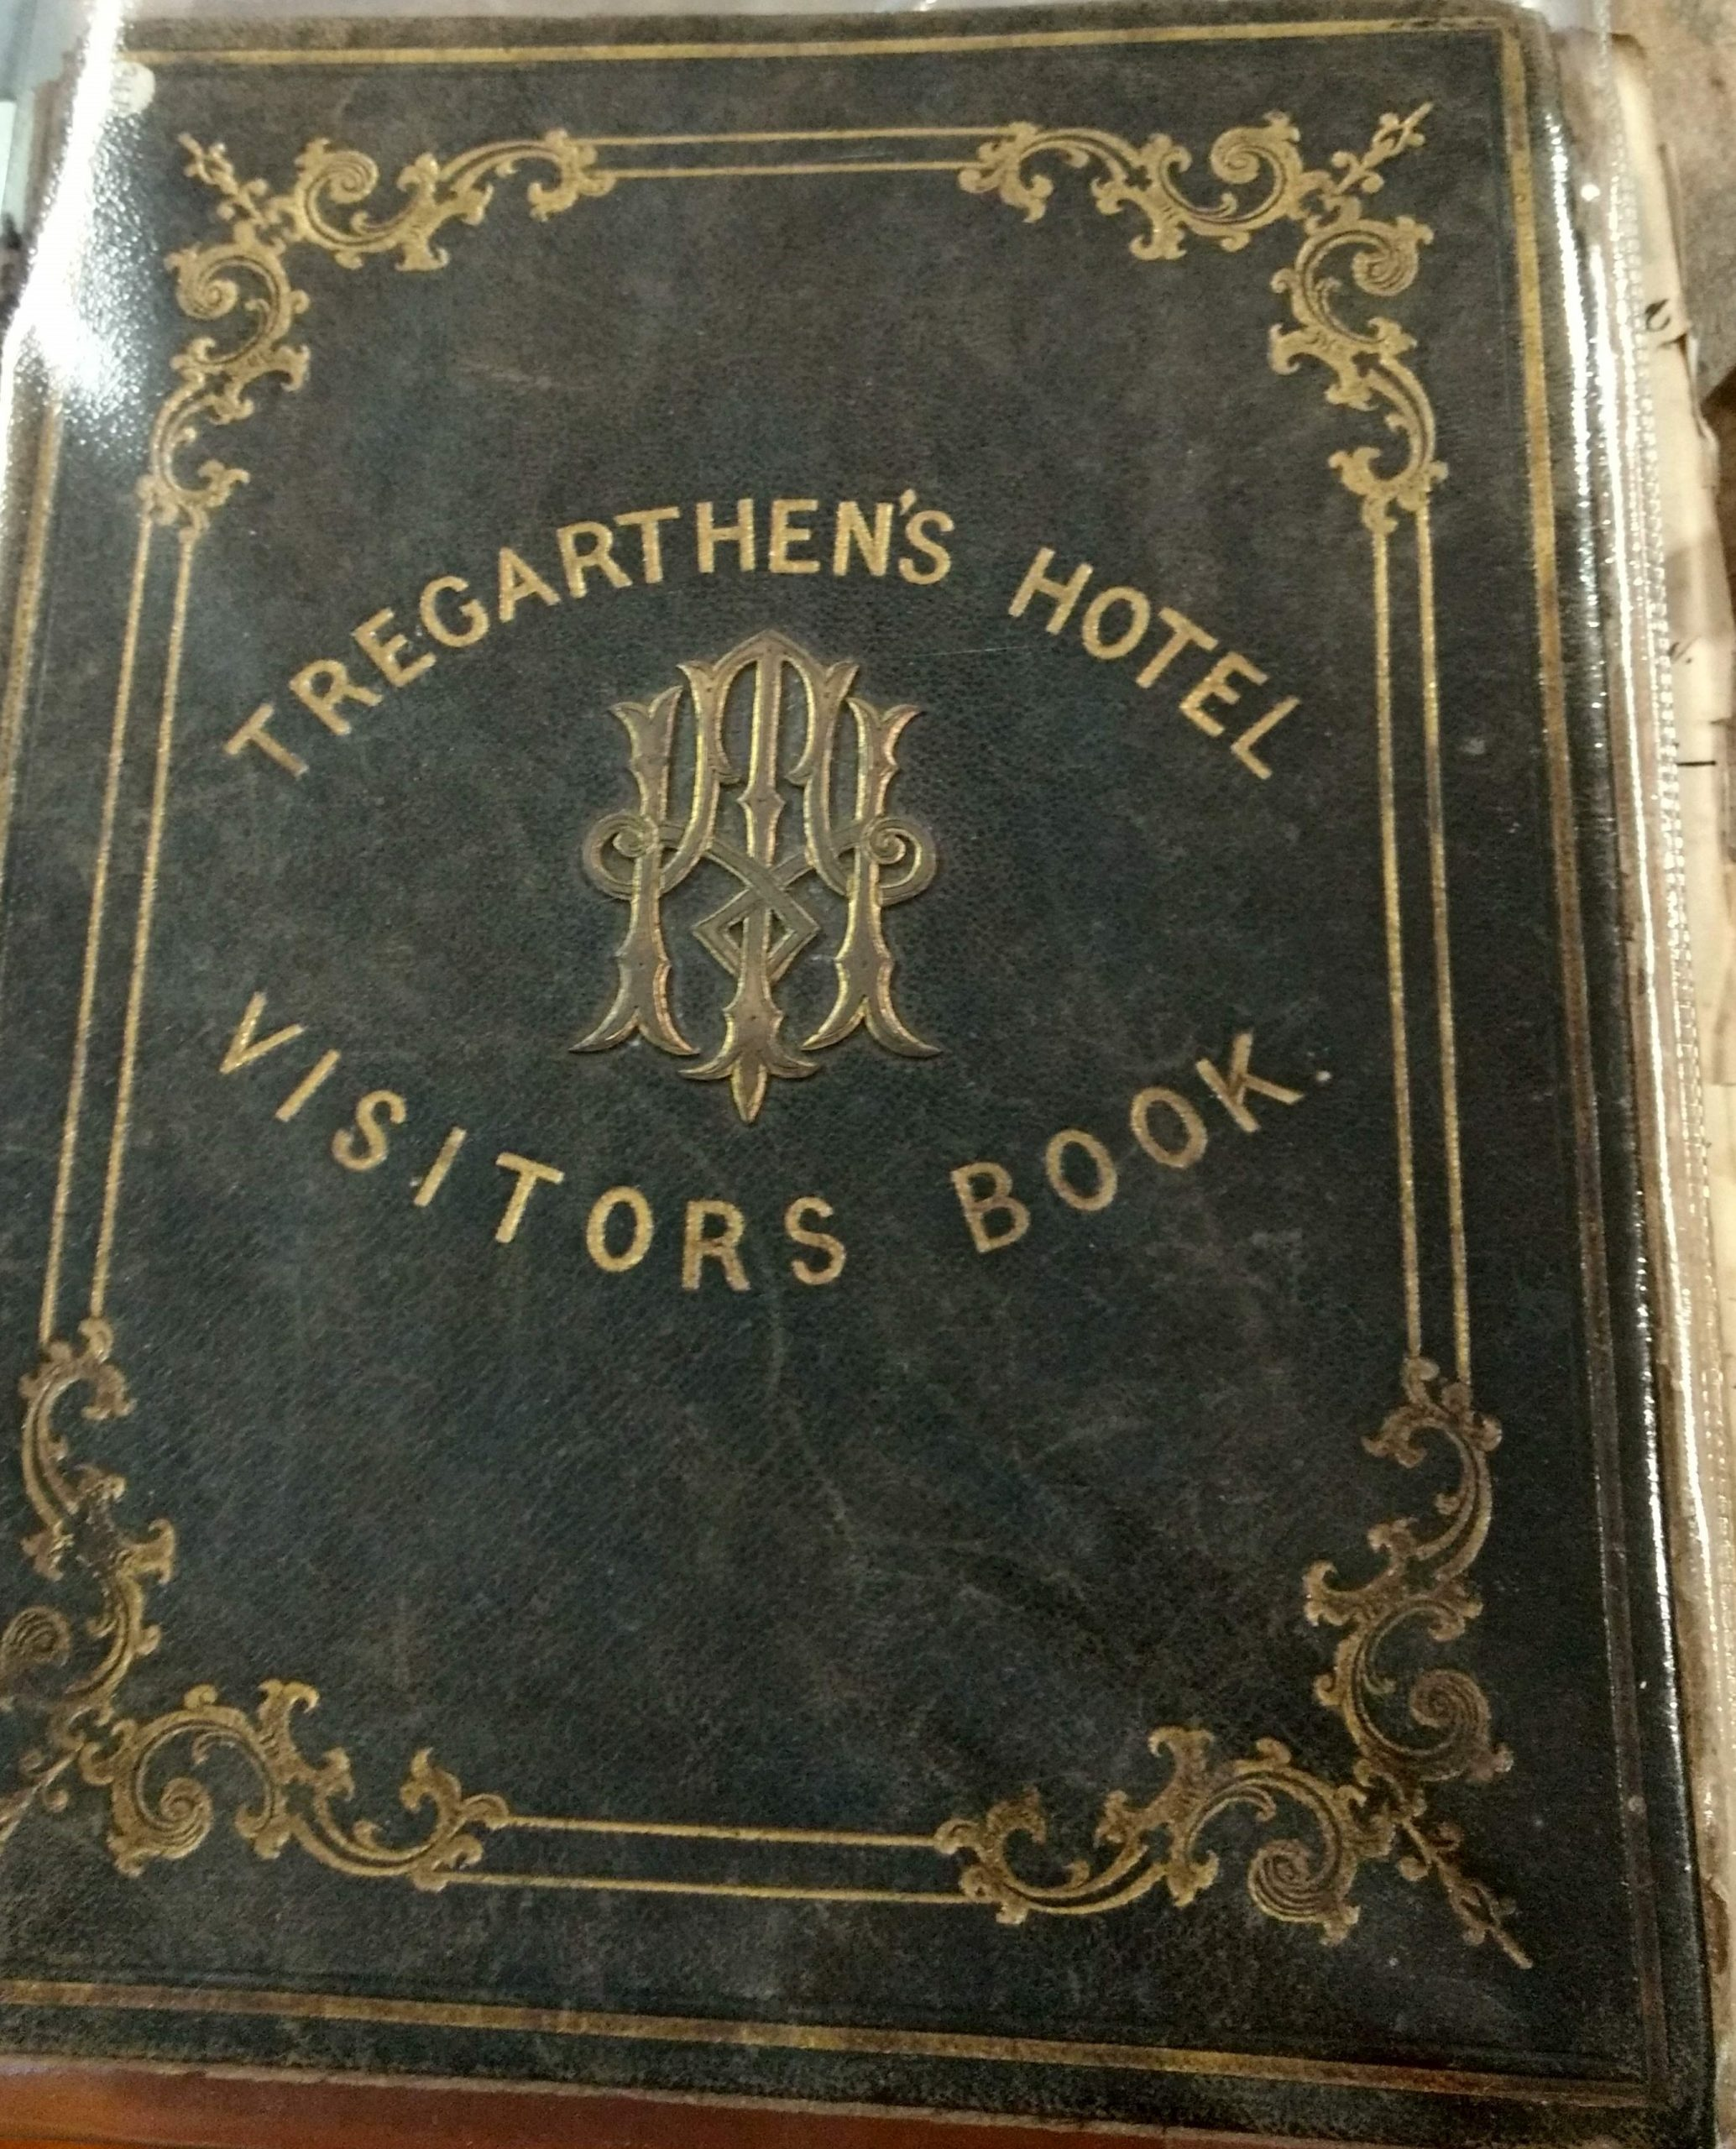 Tregarthens Hotel Visitors' Book